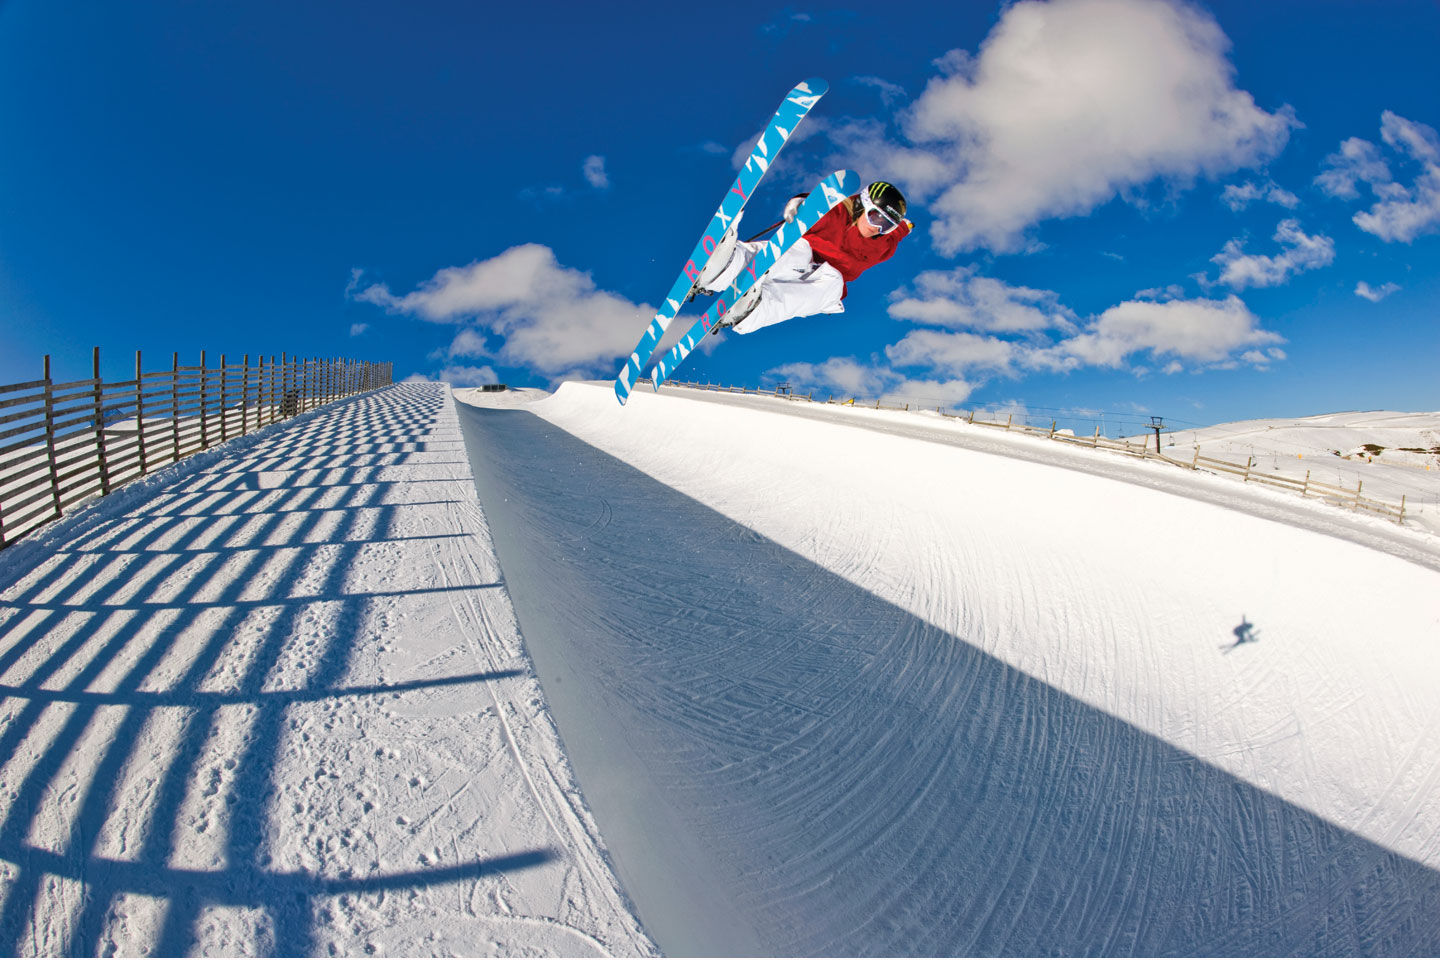 During her career, she won four Winter X Games gold medals, an ESPY for best female action sports athlete and an FIS Superpipe world title, and she became the first and only female to land a 1080 in competition.